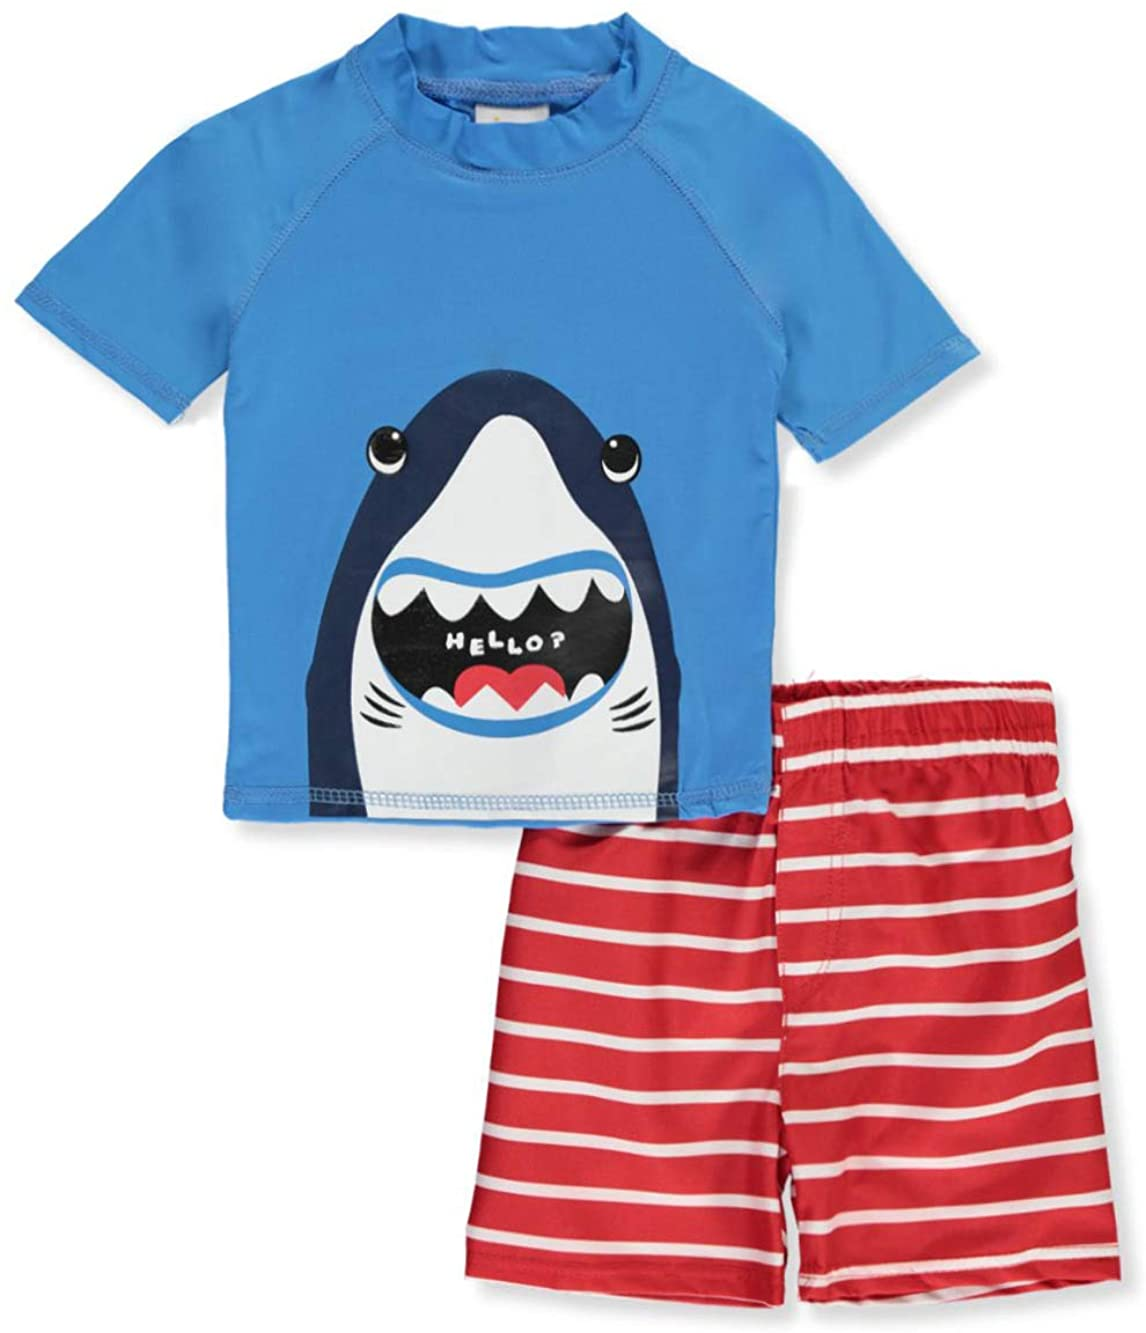 Sweet & Soft Baby Boys' Sharks and Stripes Rash Guard 2-Piece Shorts Set Outfit Royal Blue/Red